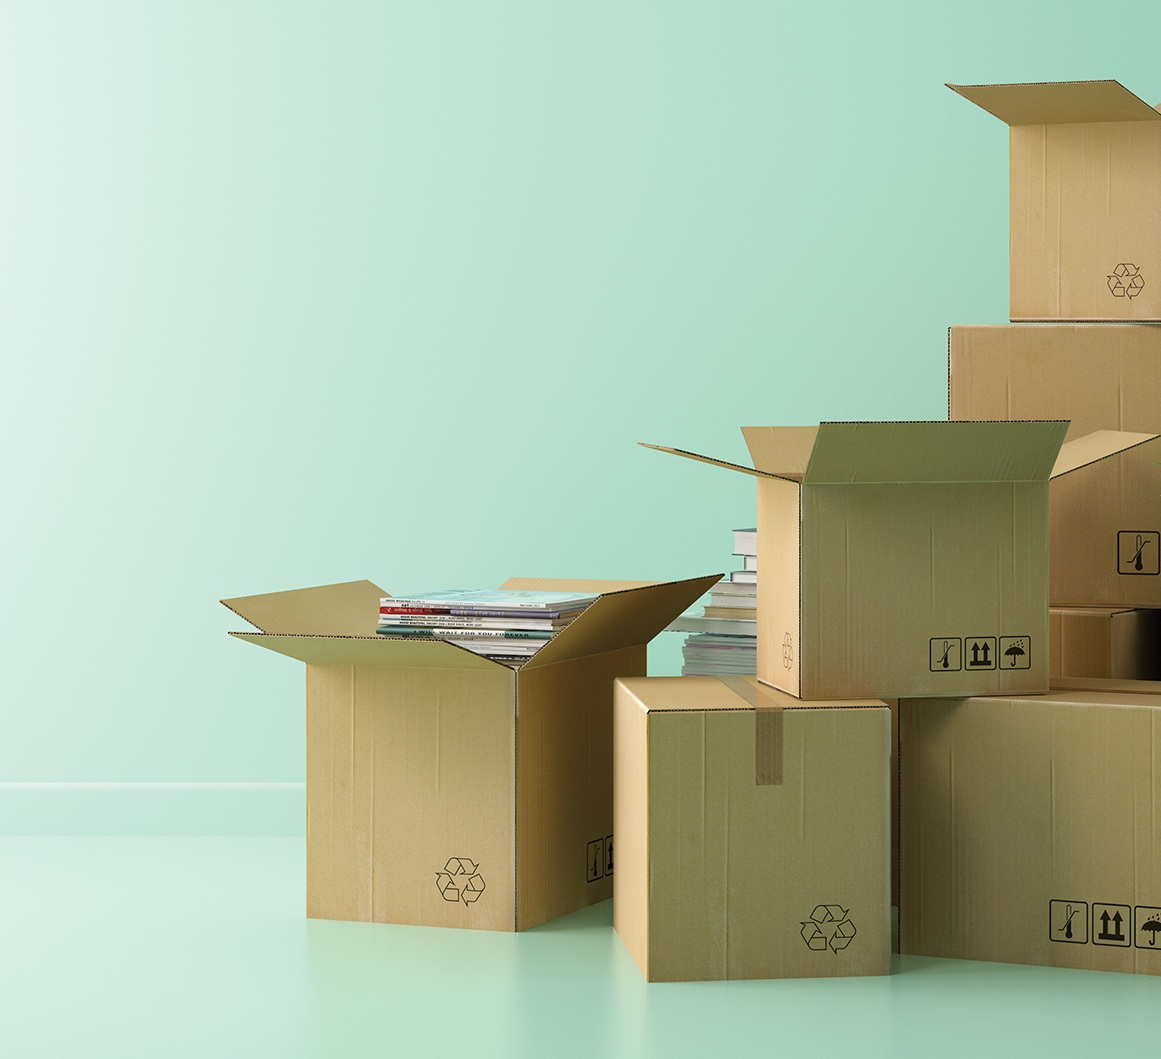 interior-with-packed-cardboard-boxes-for-RBJNFW9.jpg